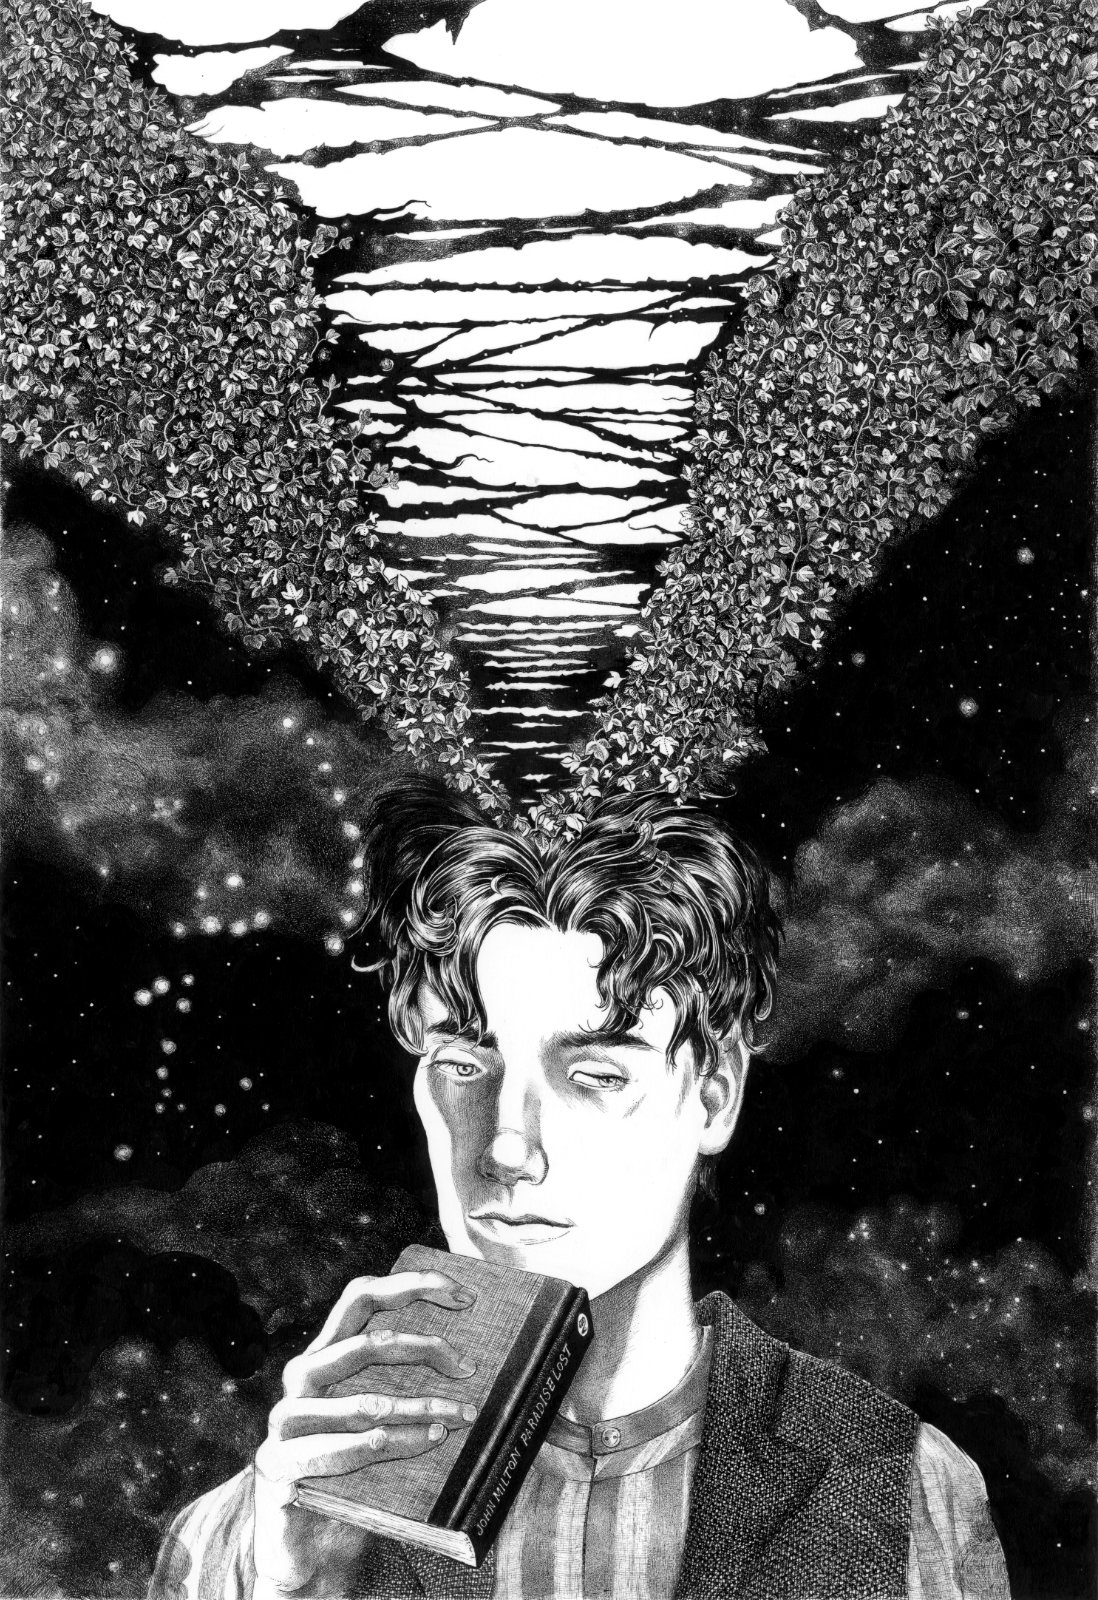 """Fern Adelstadt, a teenager boy in edwardian era holding the book """"Paradise Lost"""" by John Milton while Ivy is tearing away his whole universe. Mainly ink with touches of Pigma Sakura Micron on 200g Schoellehammer Durex Technical paper smooth, 21 x 29.7 cm."""